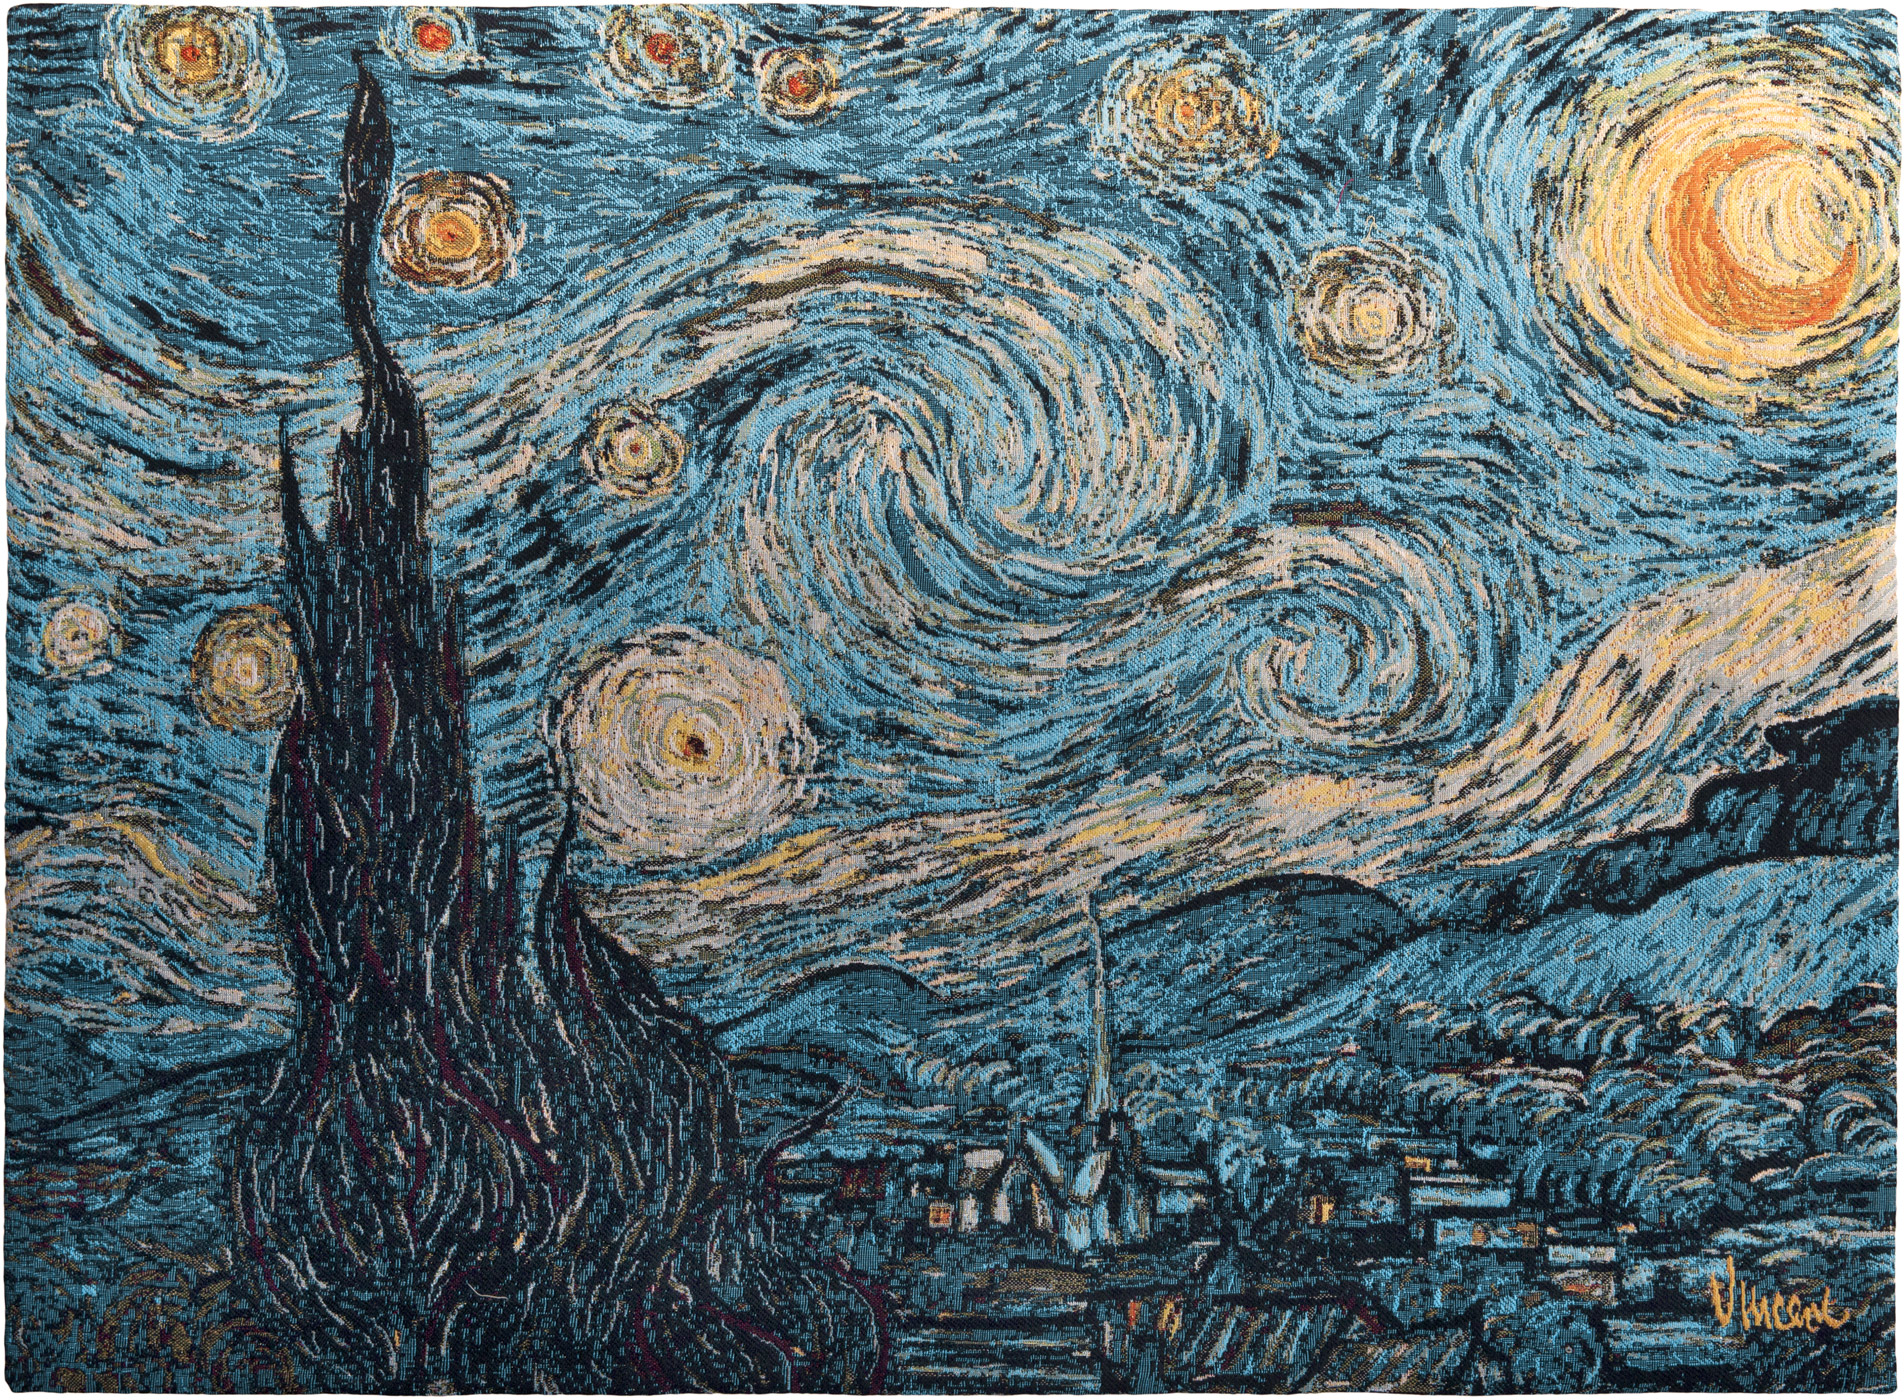 the starry gogh vincent gogh wall